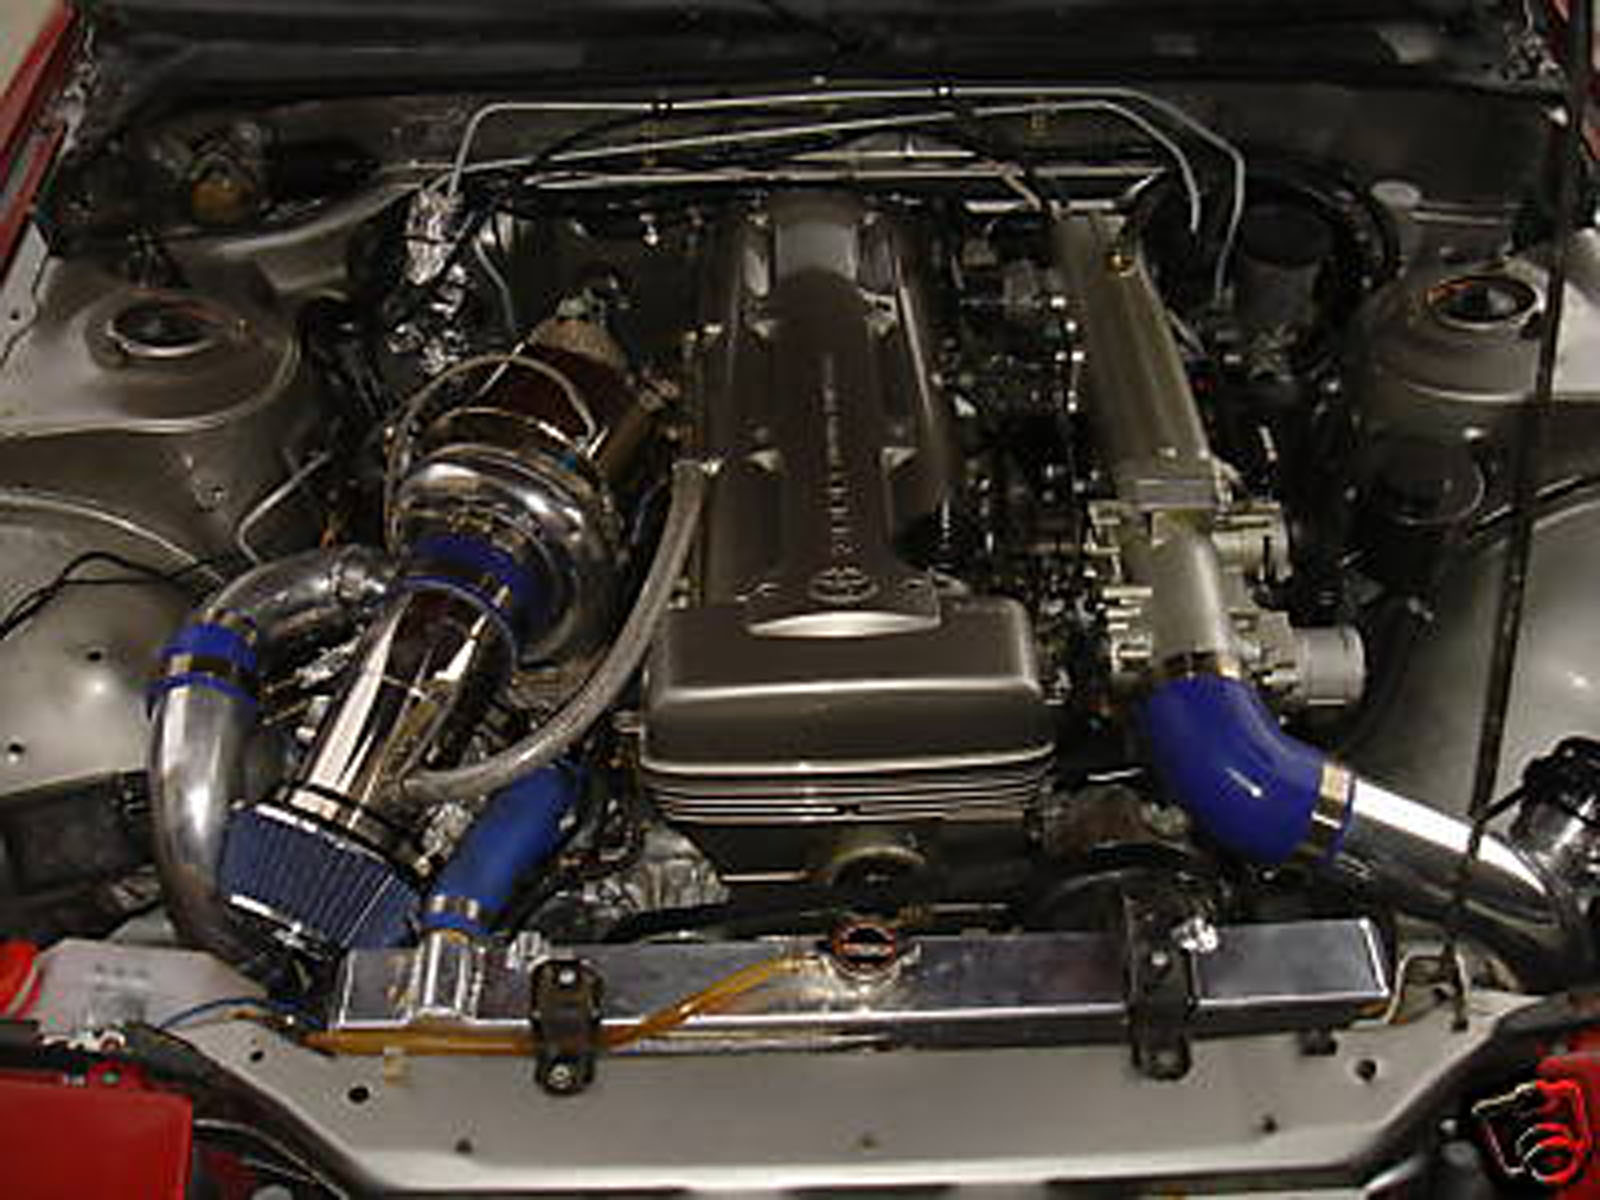 nissan 240sx 2jz engine nissan free engine image for. Black Bedroom Furniture Sets. Home Design Ideas